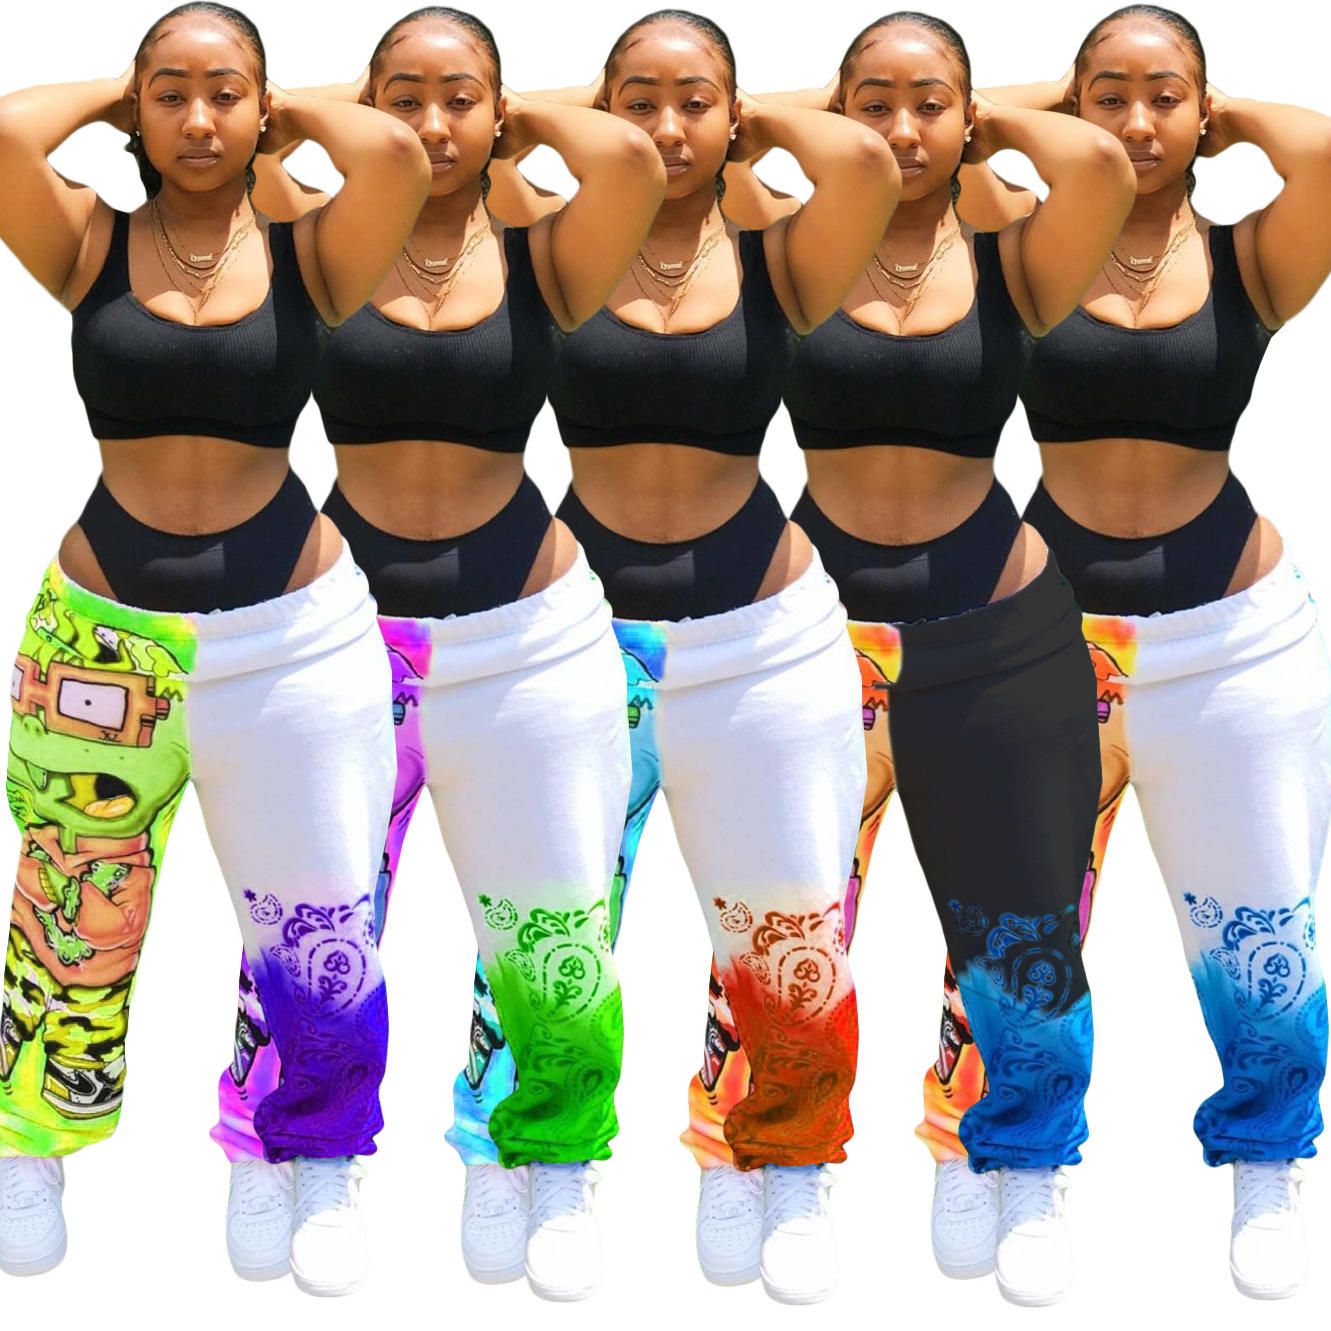 ALS191 European and American top models urban casual dress printed sport halon trousers